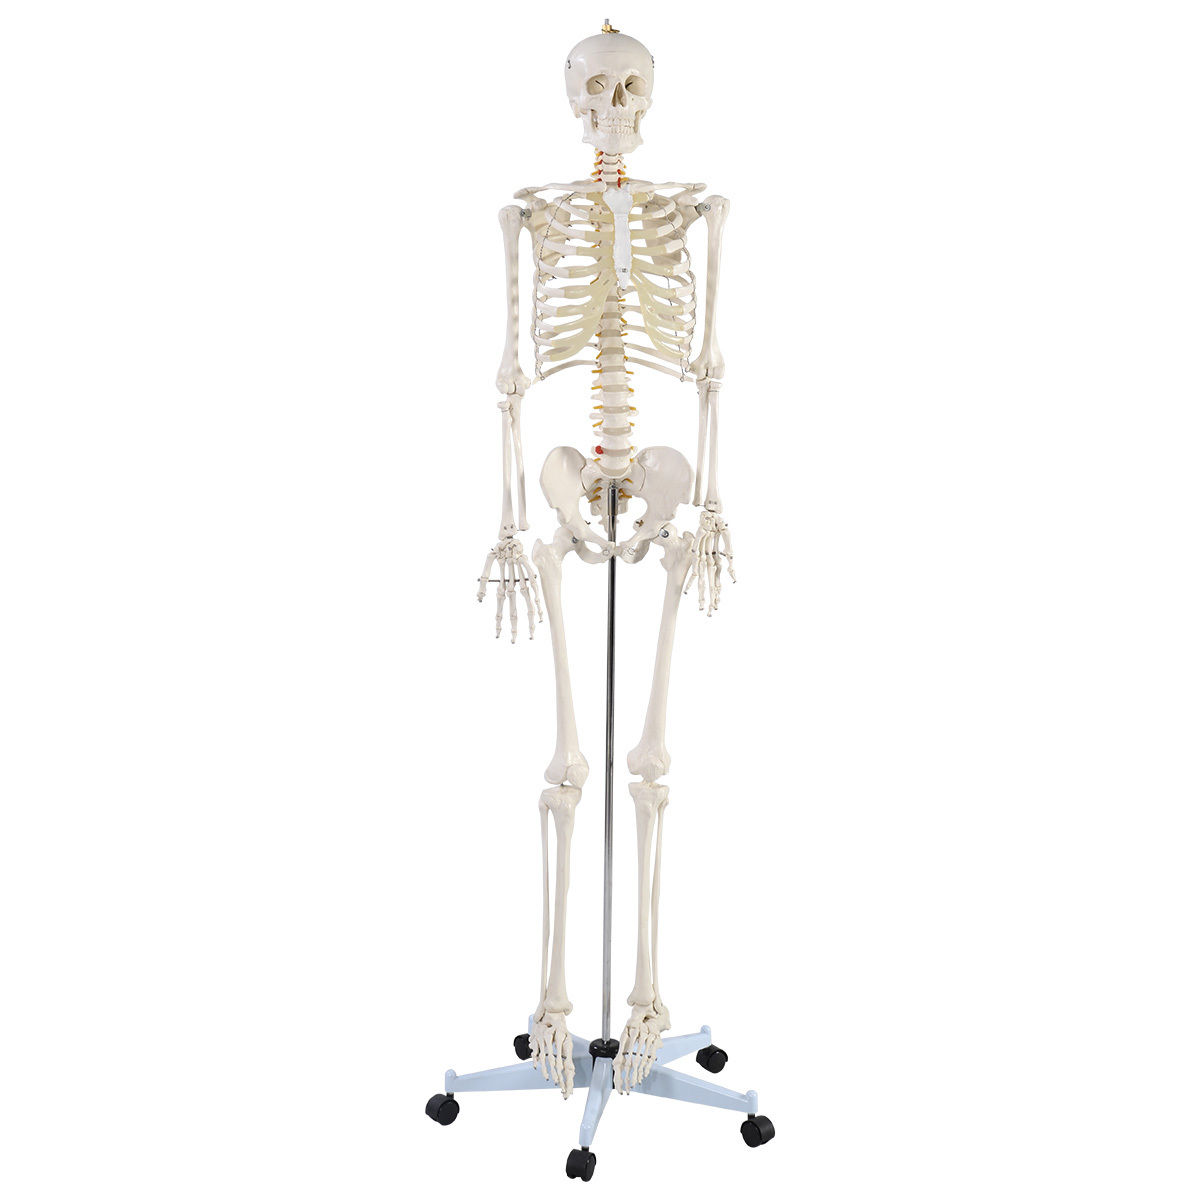 Costway Life Size Human Anatomical Anatomy Skeleton Medical Model + Stand by Costway